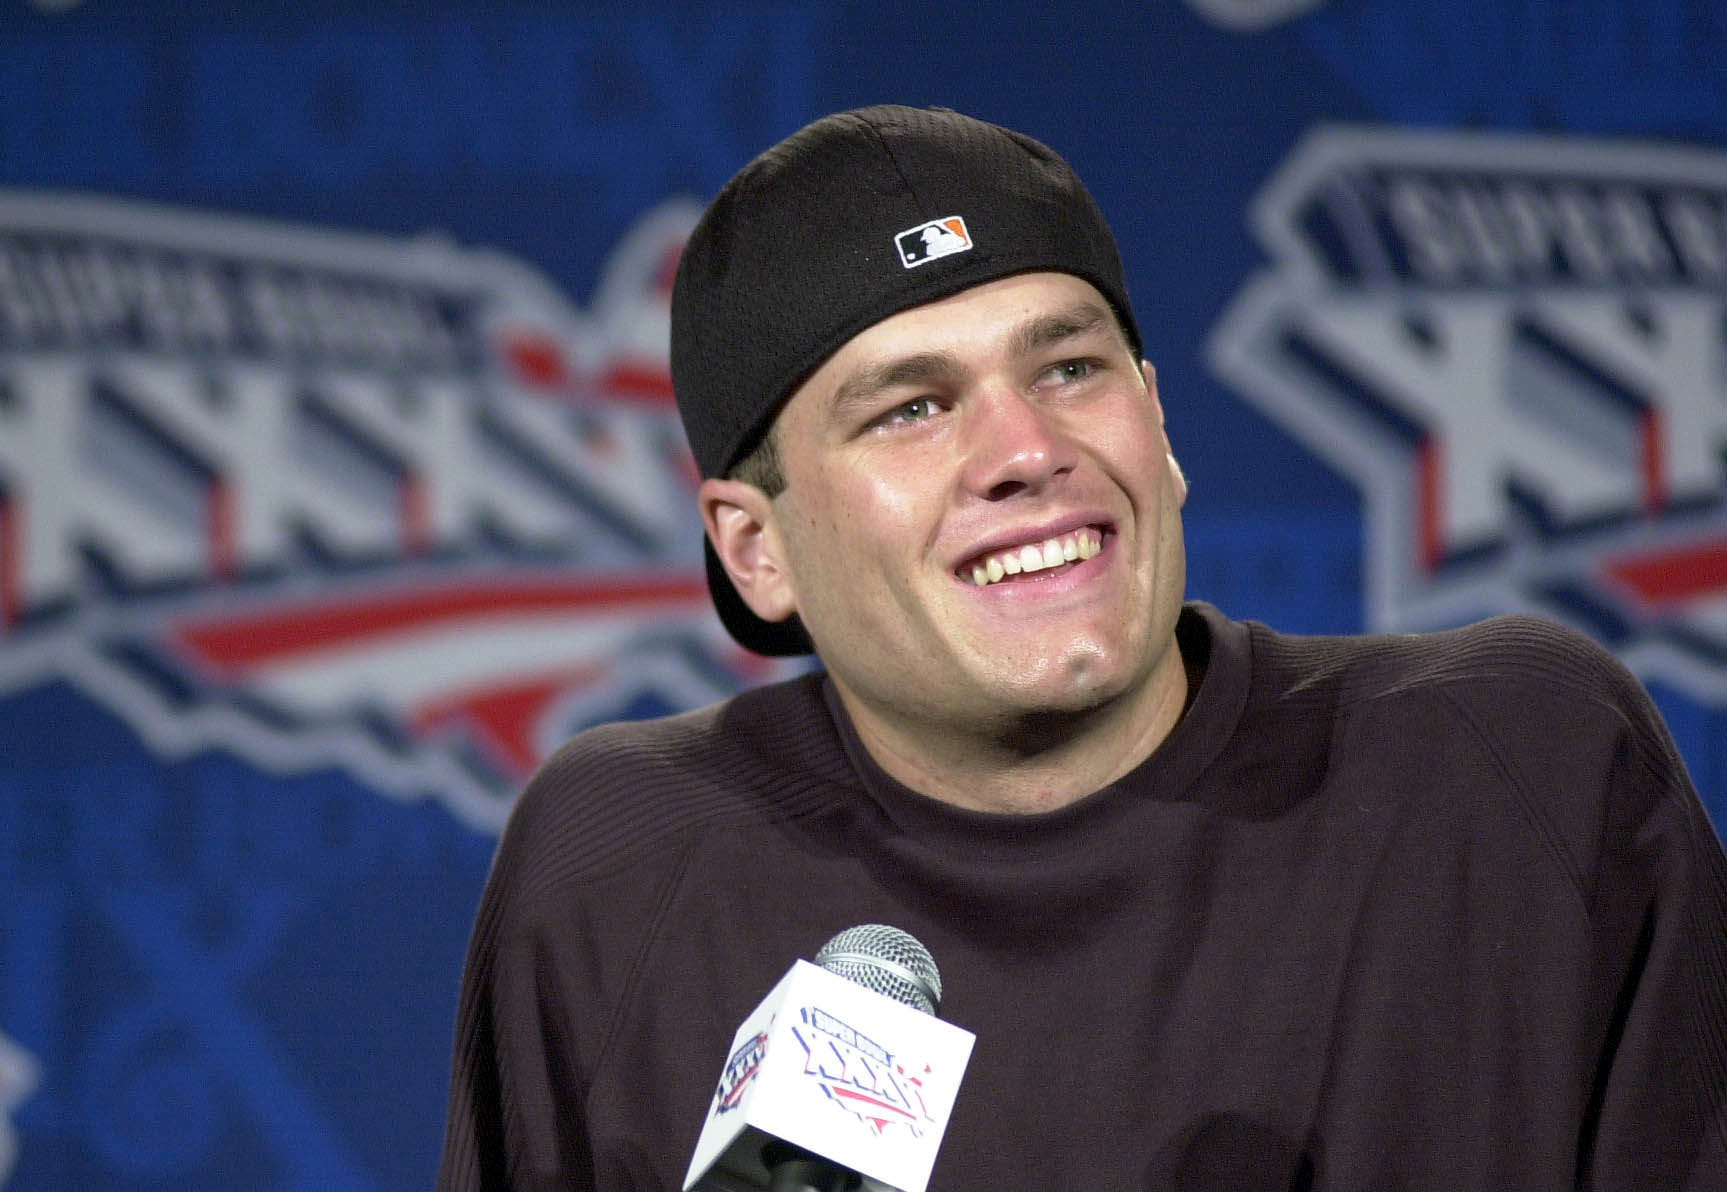 Tom Brady was all smiles at a press conference on Thursday after being named starting quarterback fo